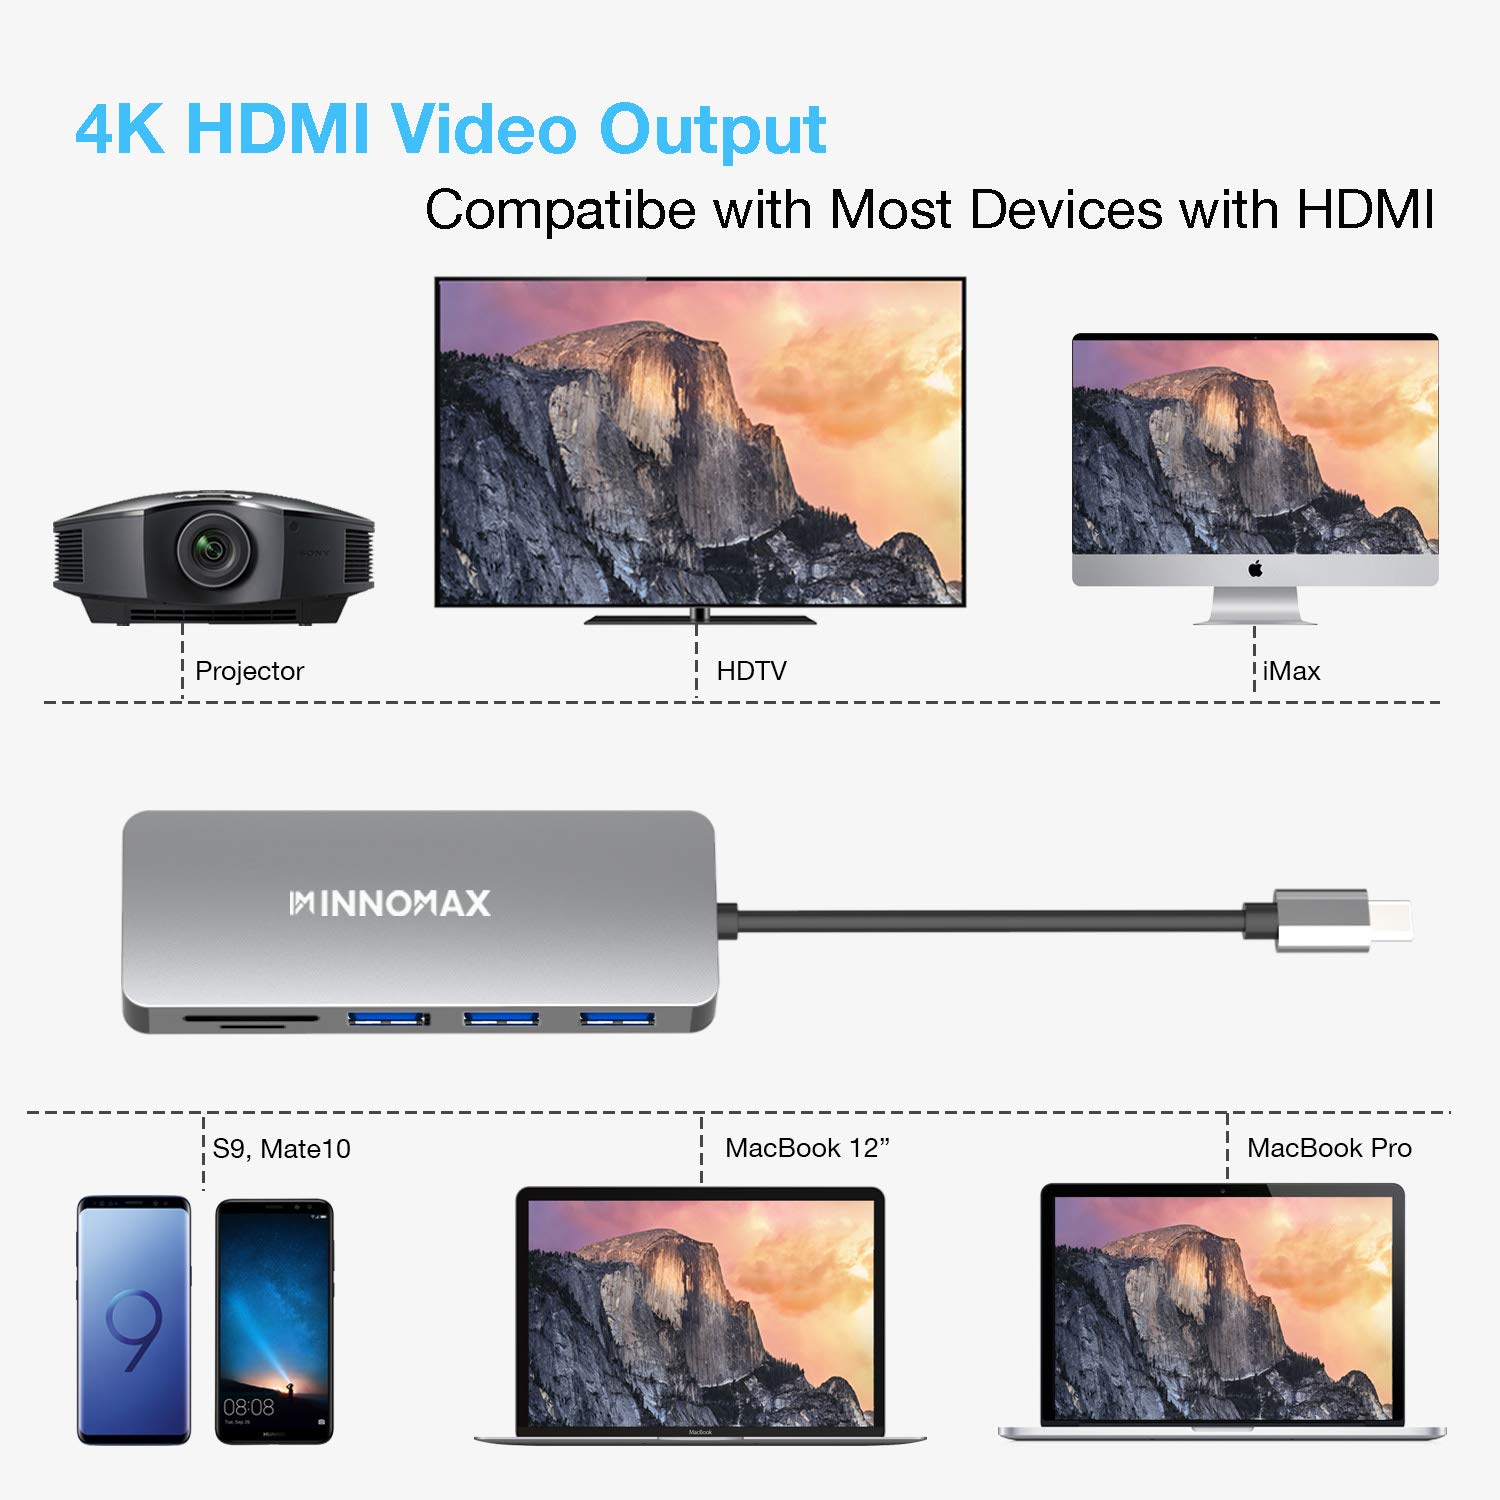 INNOMAX 7-N-1 USB Type-C to HDMI Adapter Hub with Power Delivery, SD Card Reader, 3 USB Ports for New MacBook Pro, Windows Powered Type C PC and Phones Like HW Mate 10 Pro,Samsung S8 etc-Gray by INNOMAX (Image #4)